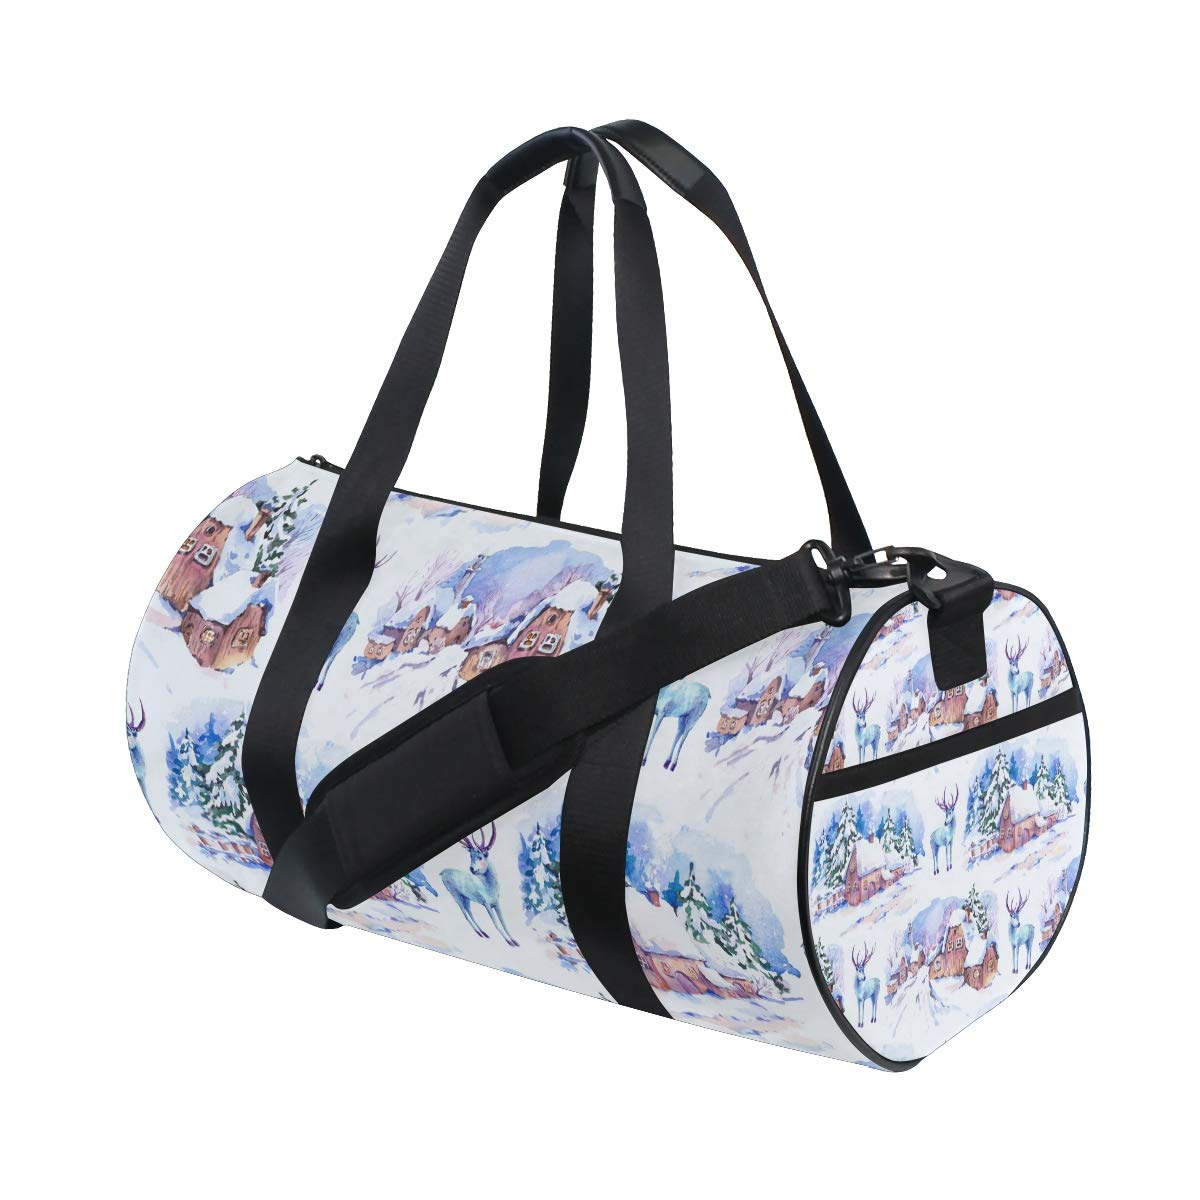 Deer Yoga Sports Gym Duffle Bags Tote Sling Travel Bag Patterned Canvas with Pocket and Zipper For Men Women Bag